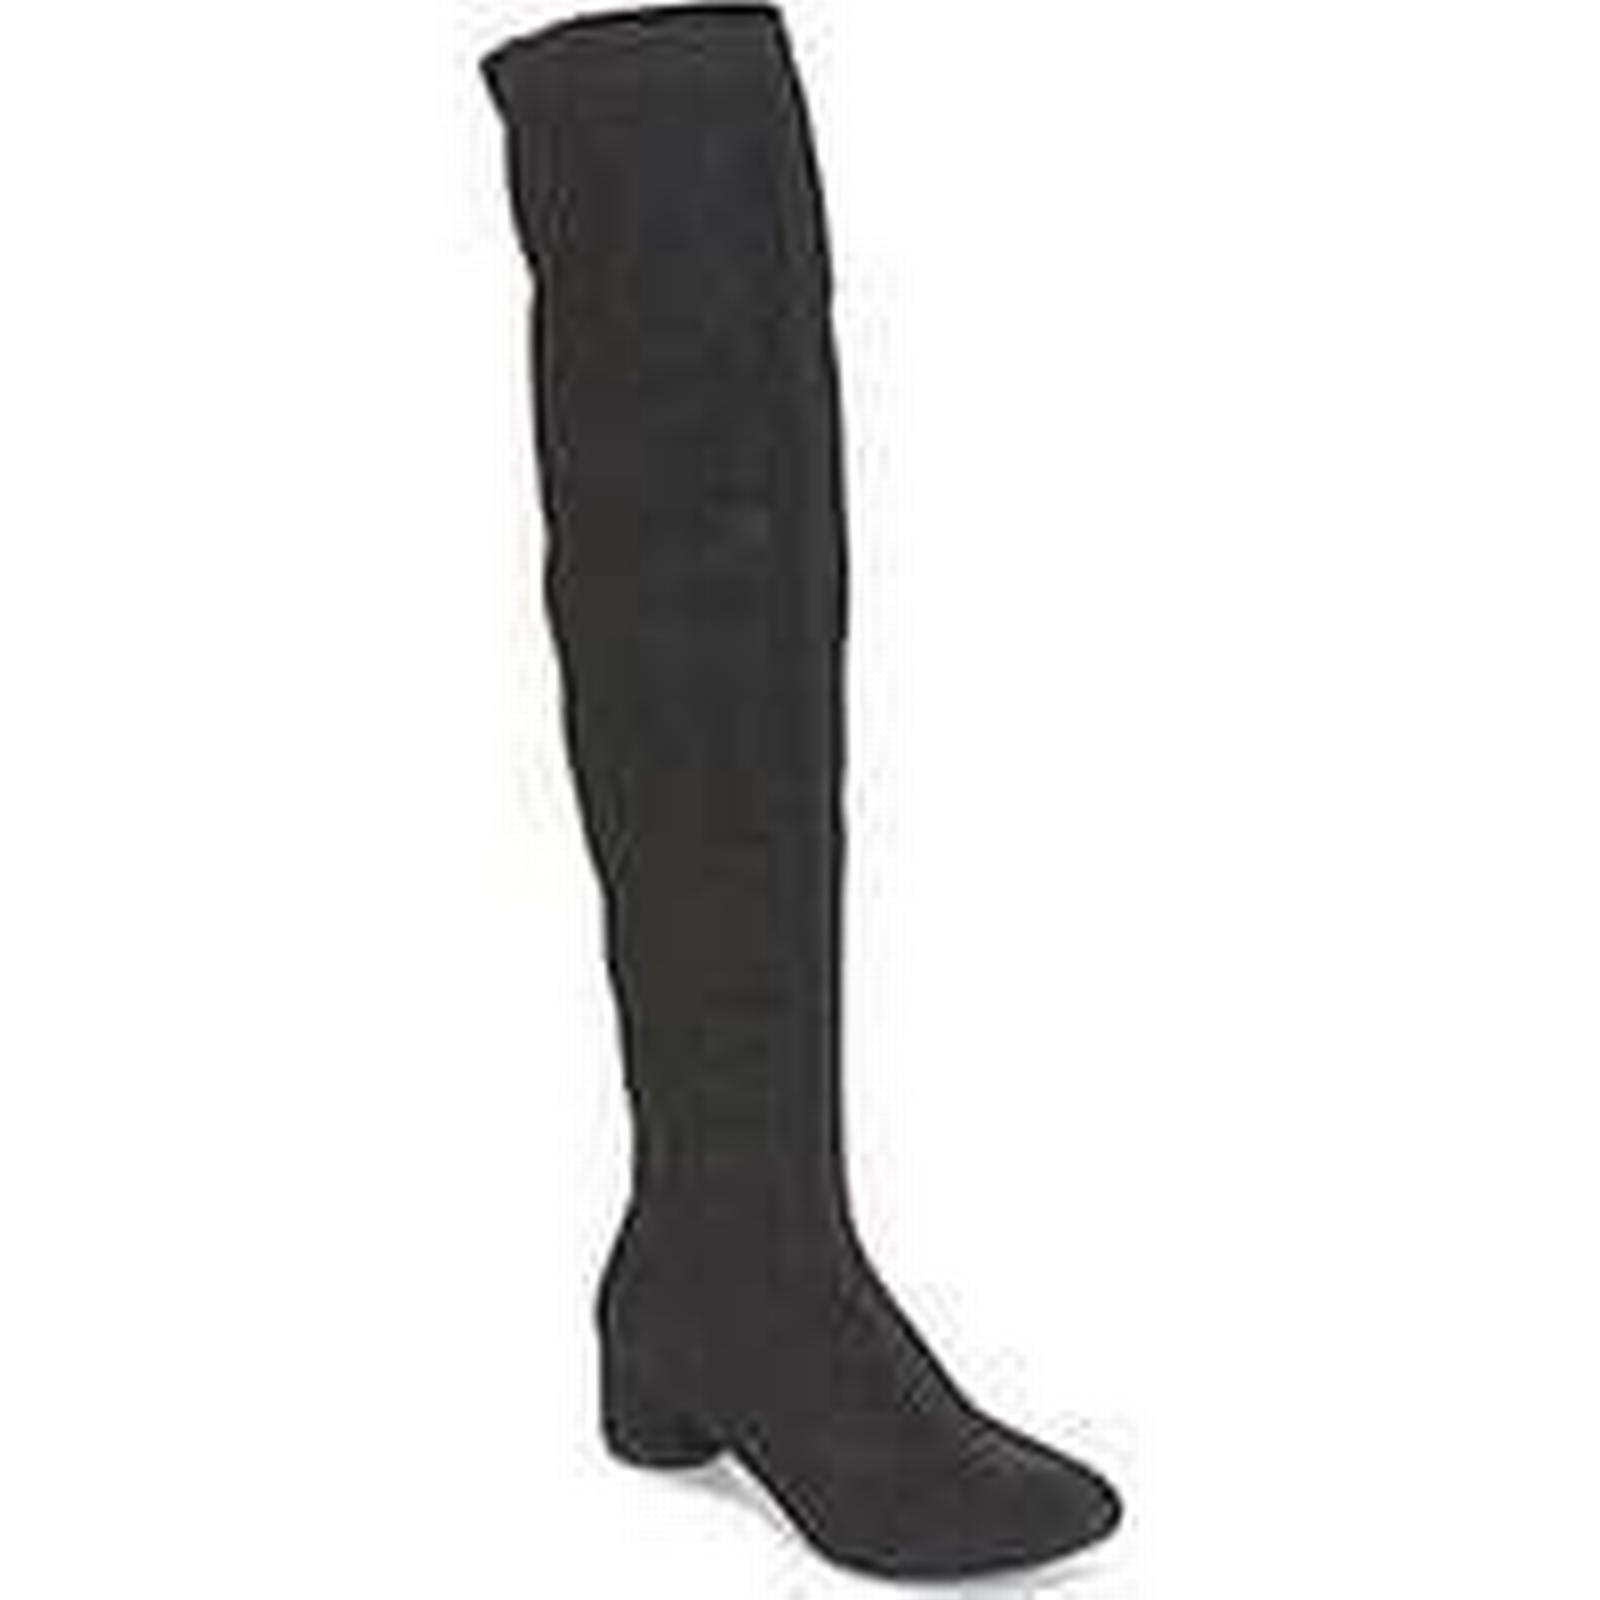 Spartoo.co.uk Lollipops Boots ALASTIC HIGHBOOTS women's High Boots Lollipops in Black 911d52